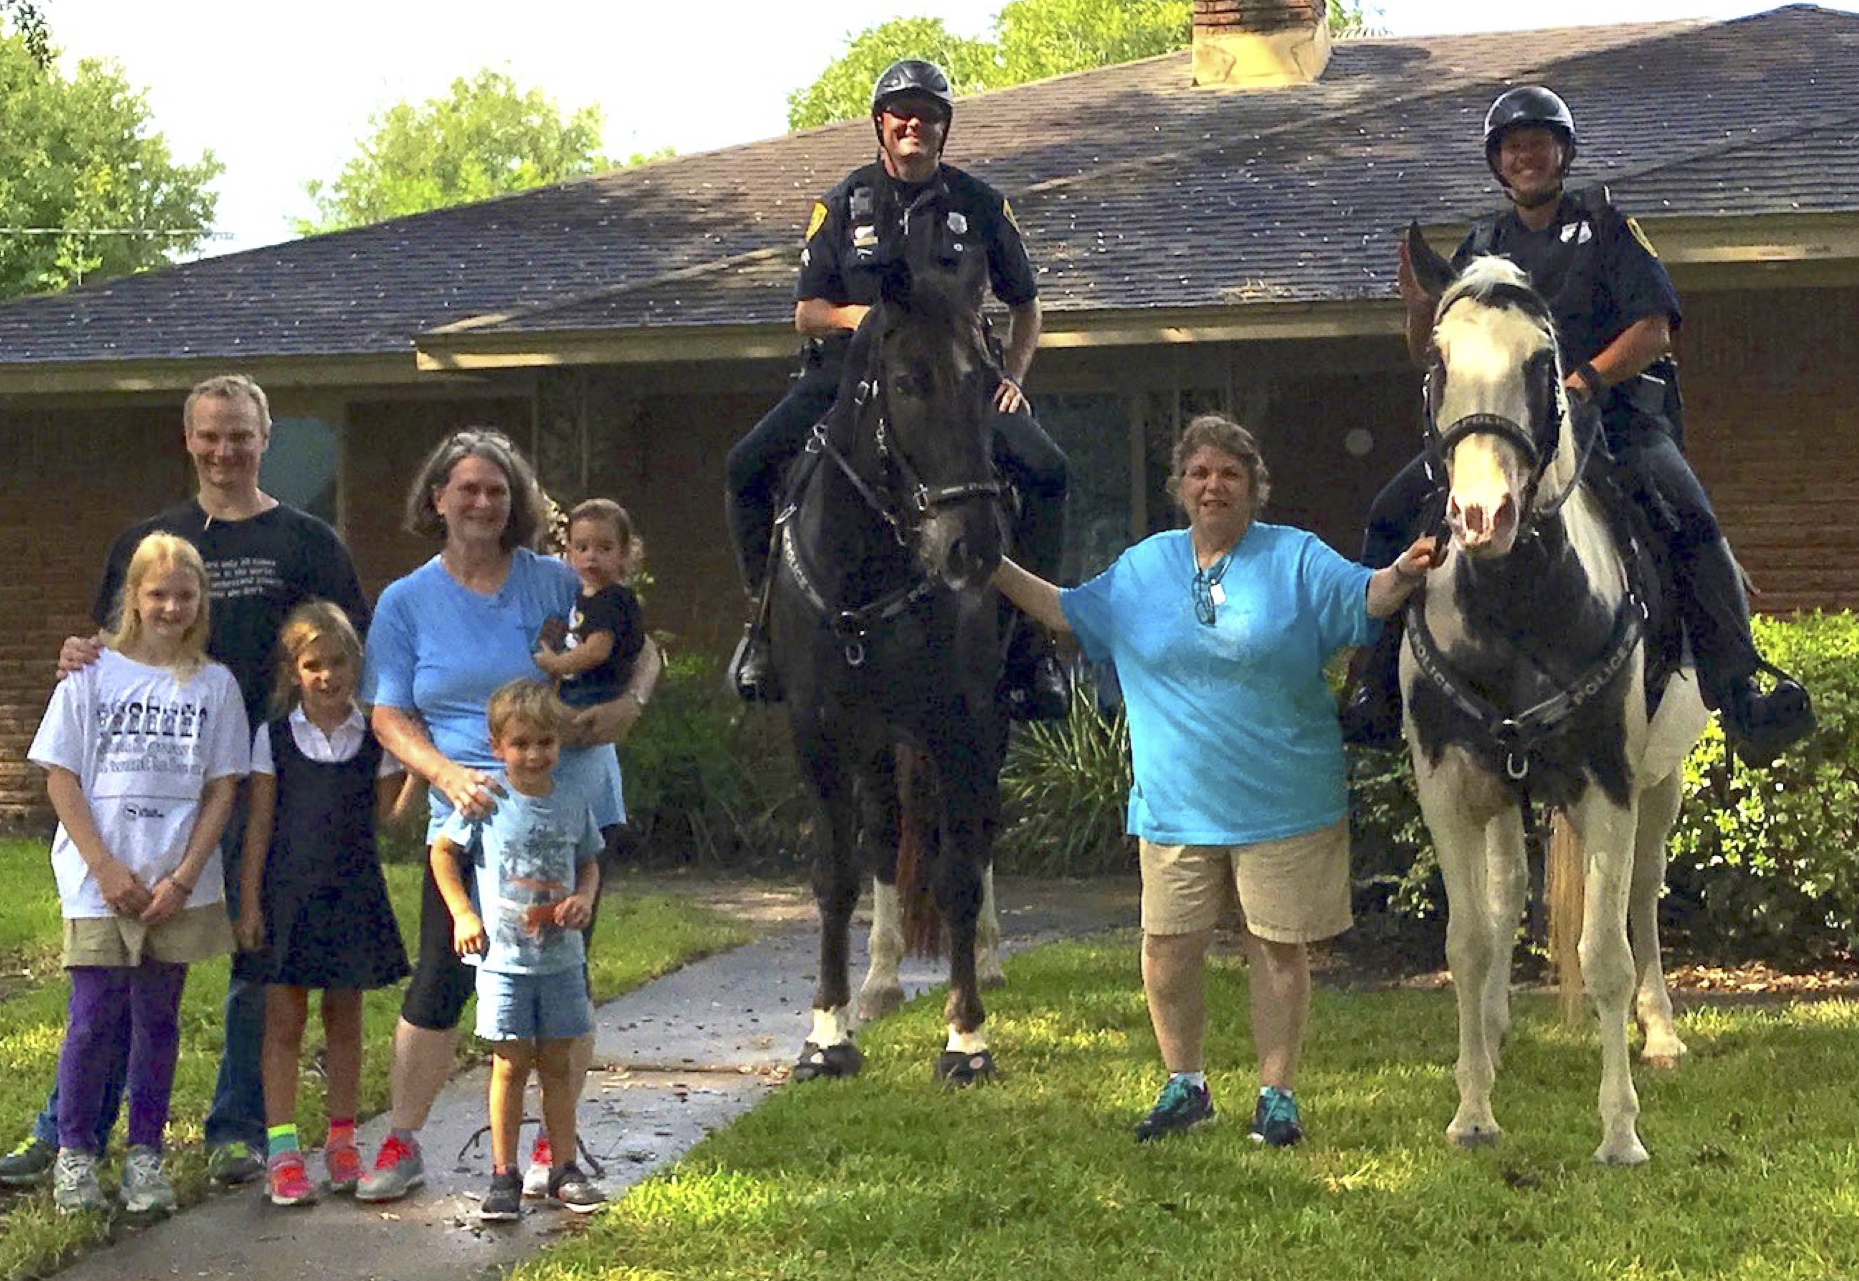 Ms Pat Woods with Officers Towler and Zboril, and (the real stars of the show) Texans Major and Star pose with neighborhood kids during an HPD mounted patrol visit to Timbergrove.